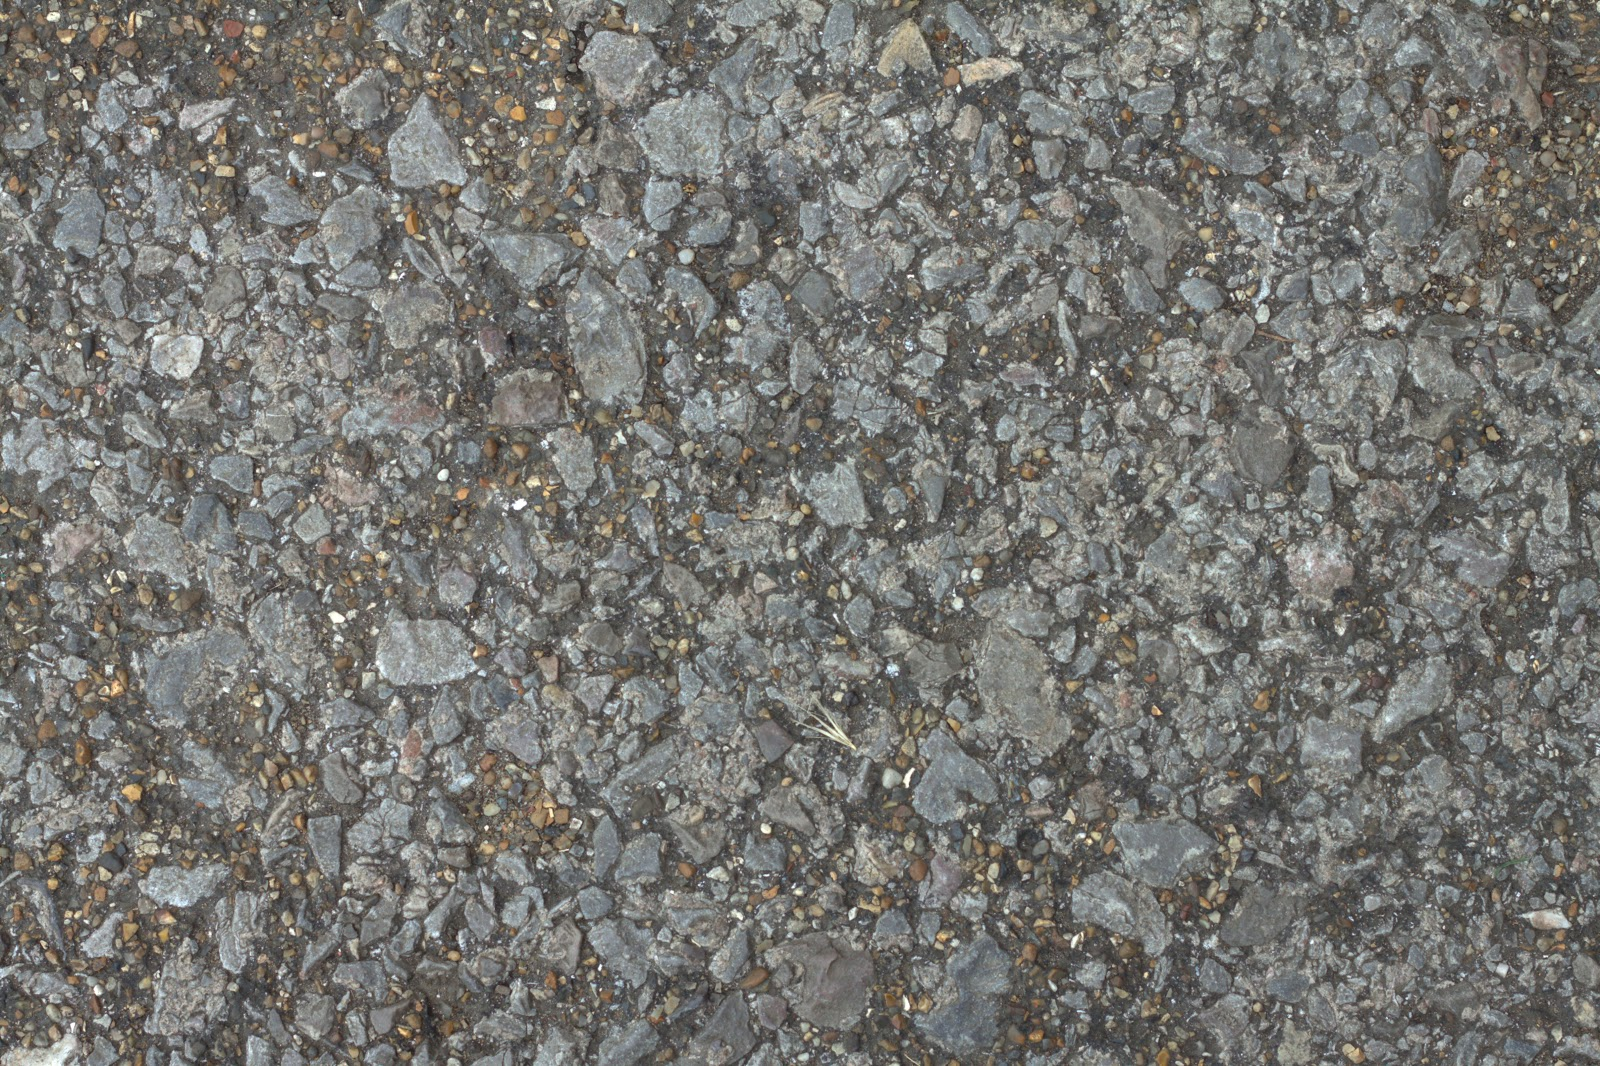 (PEBBLESTONE 3) concrete cobble ground gravel floor walkway texture